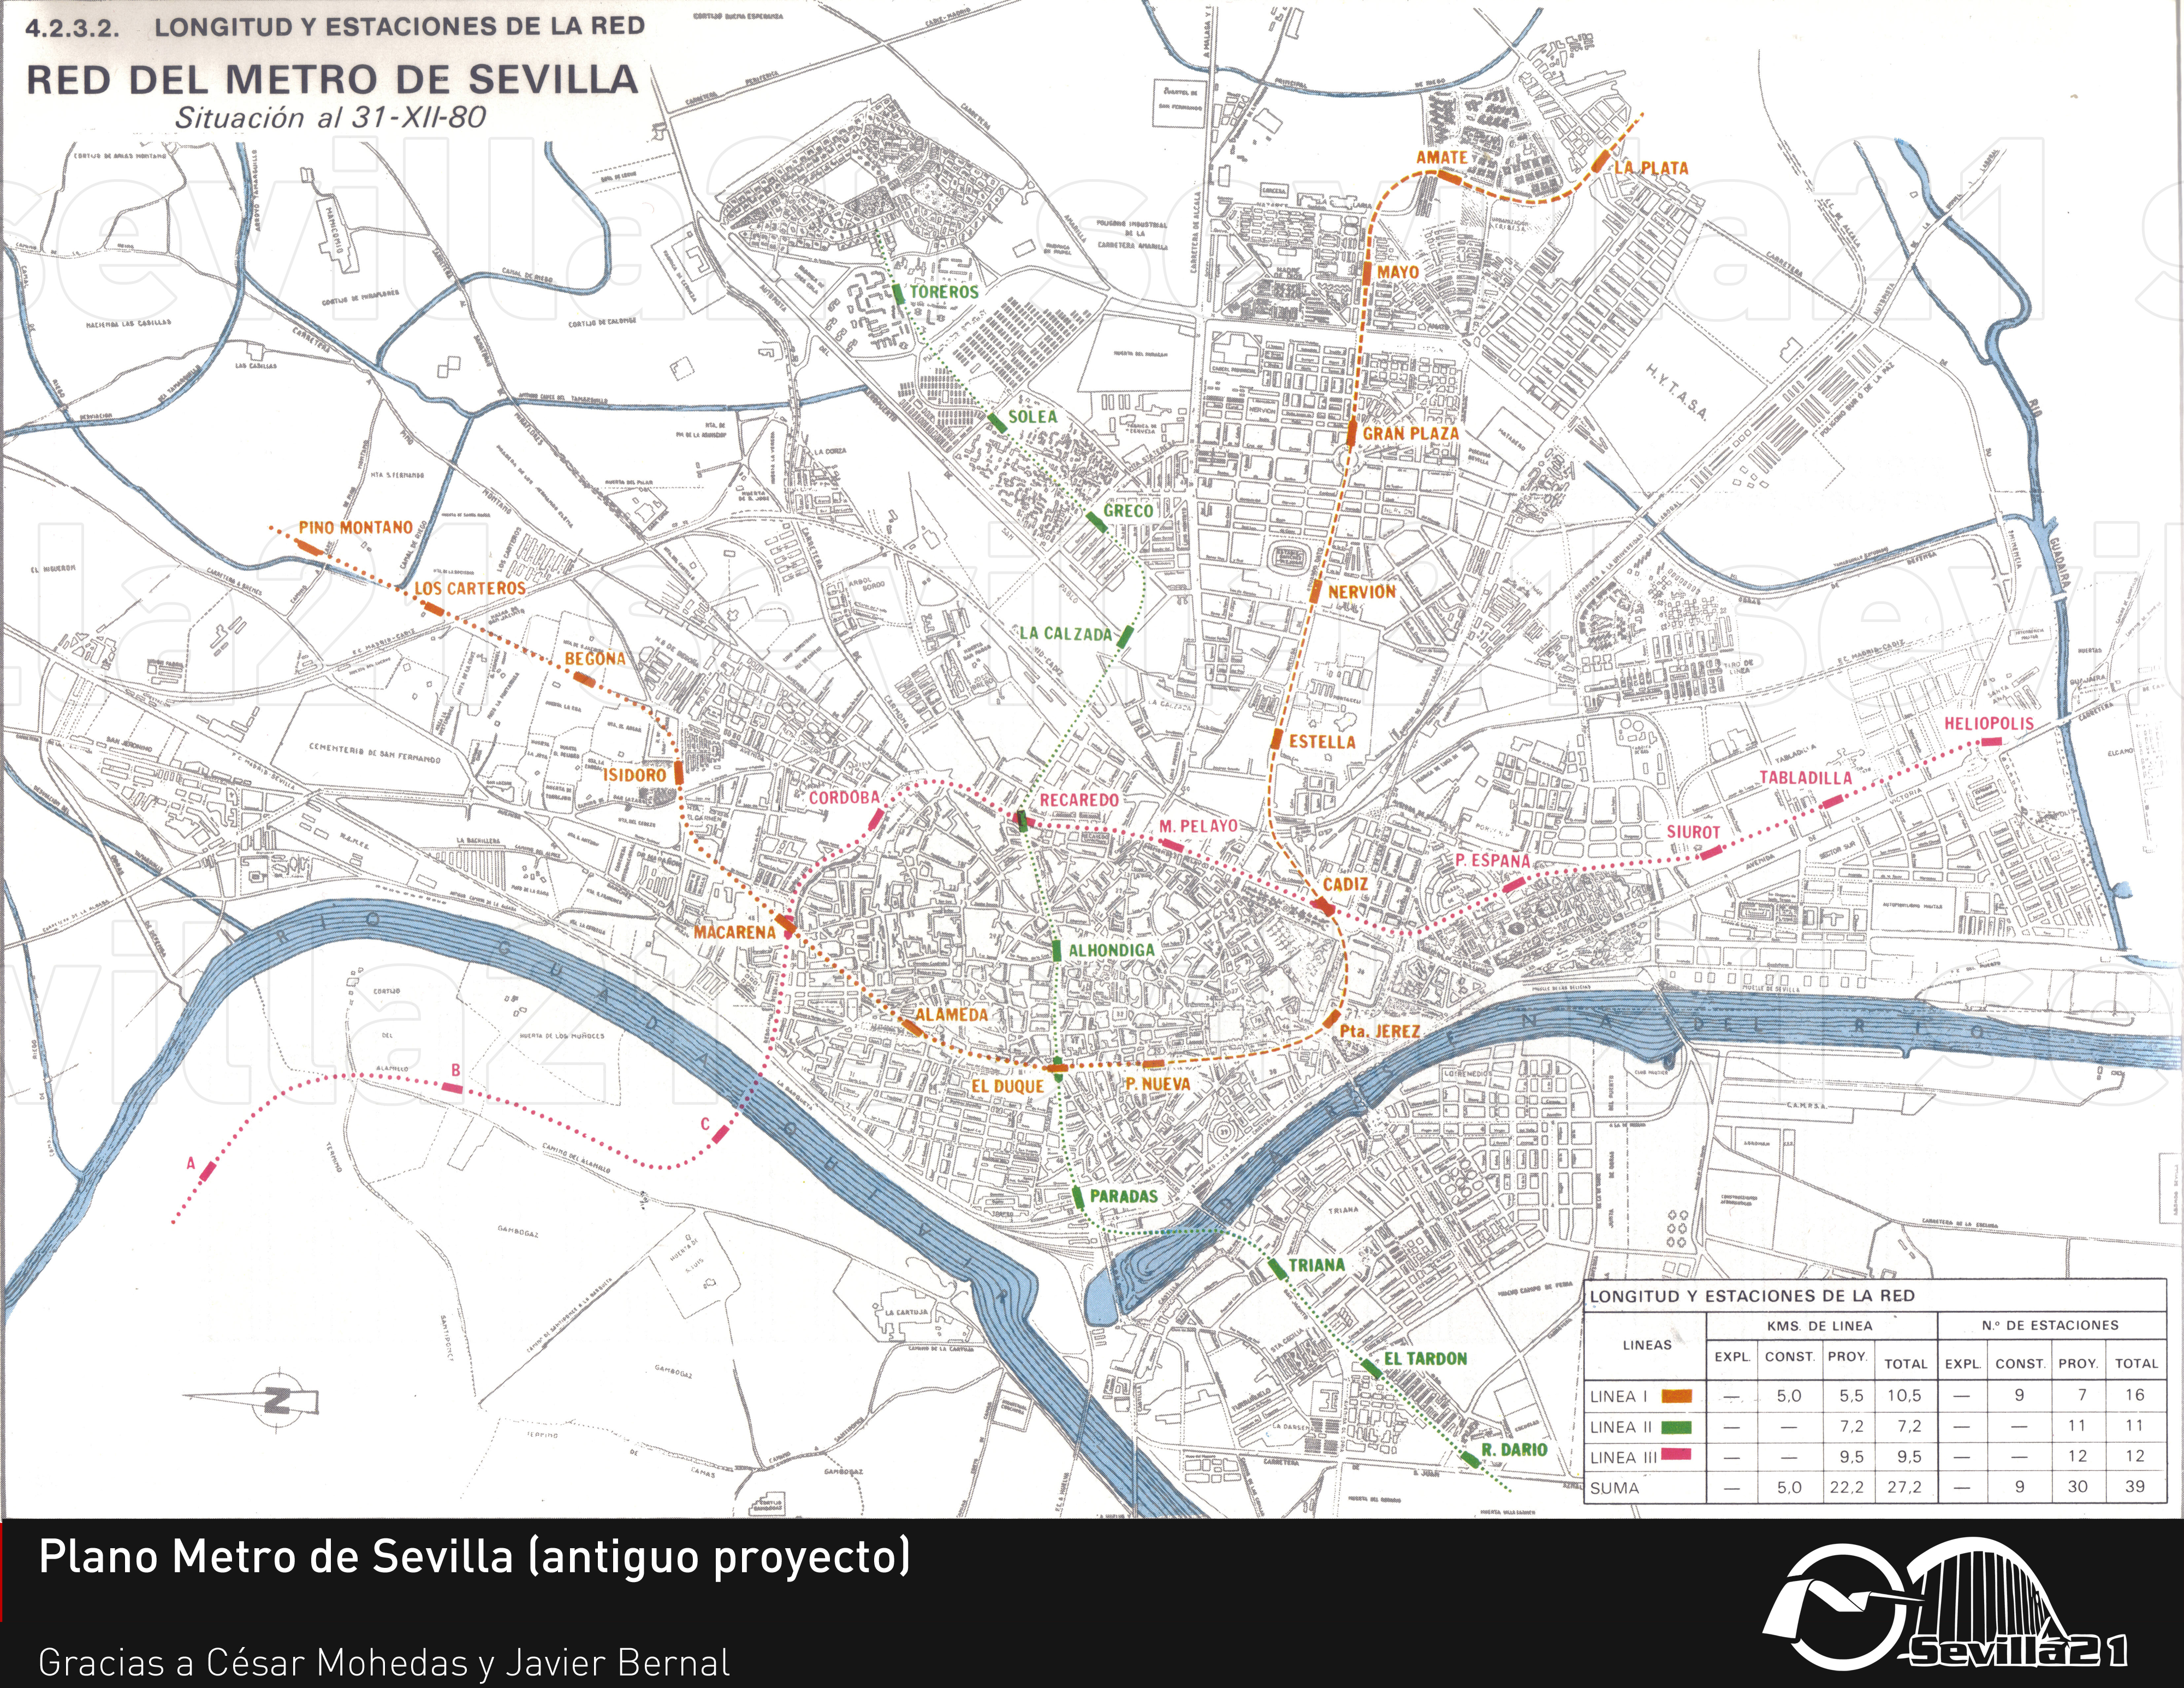 Seville subway network 1980